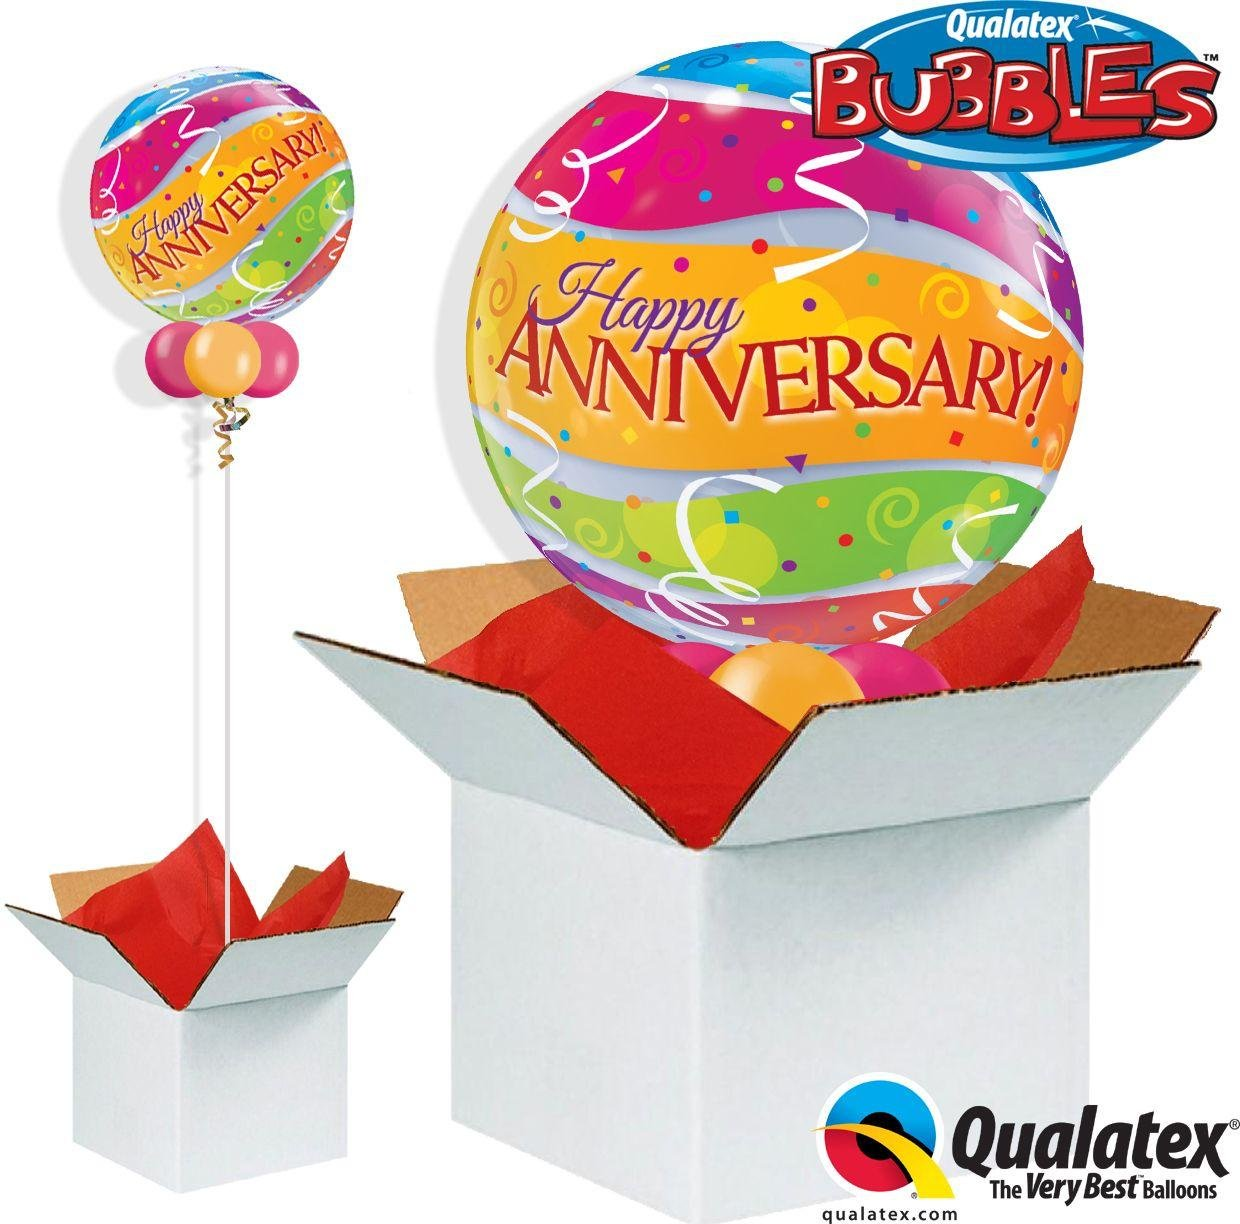 Argos - Anniversary Bands - Bubble - Balloon in a Box